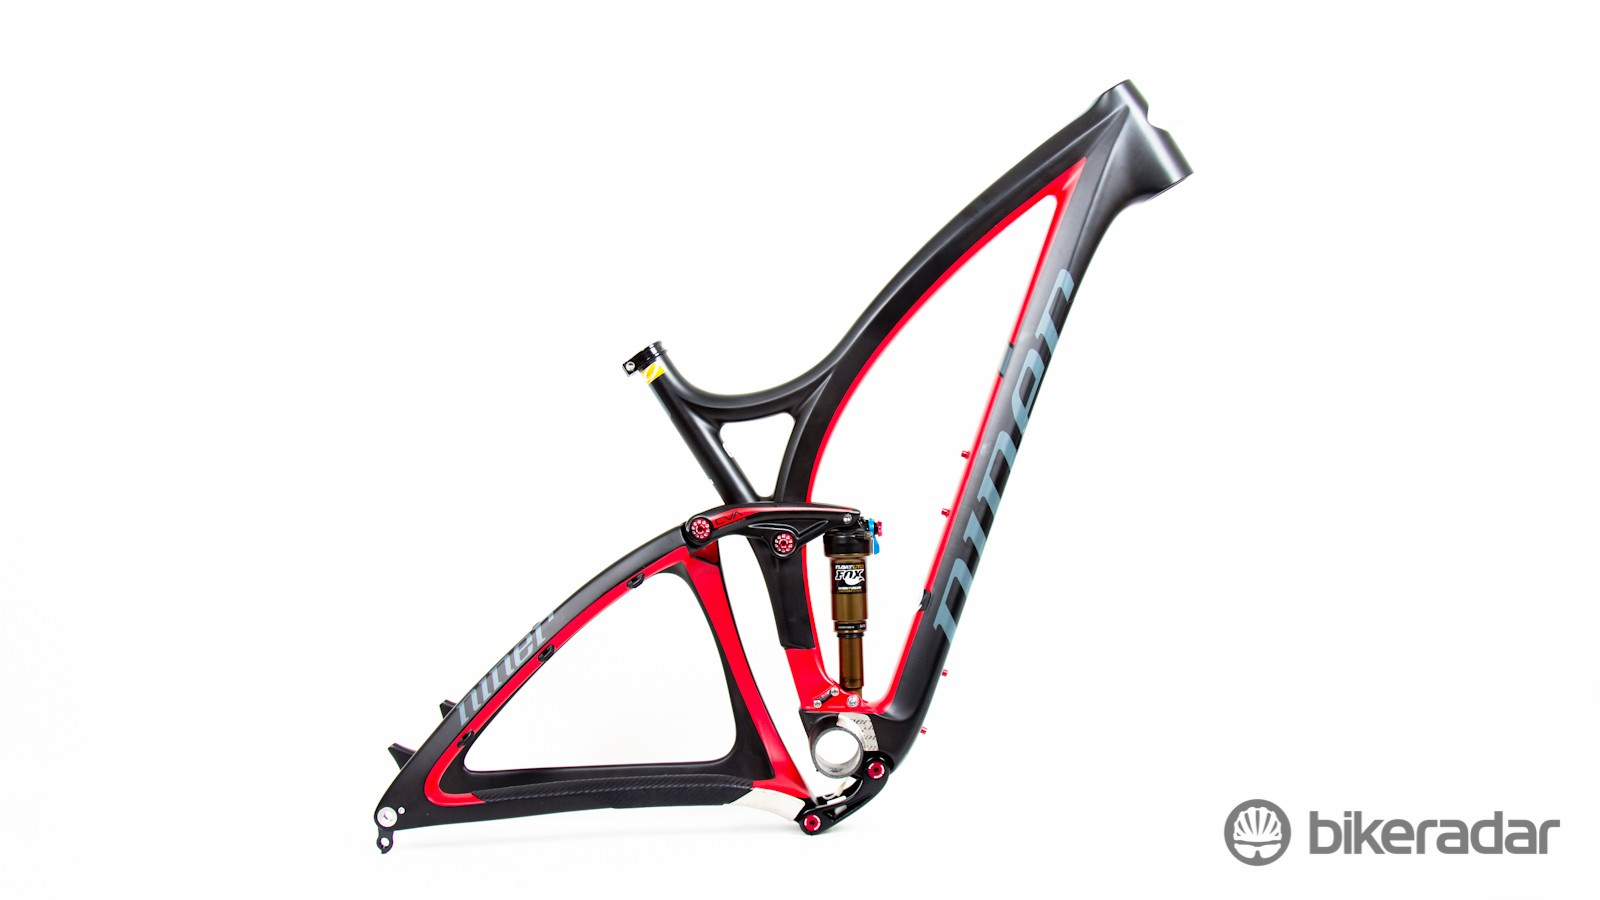 The Niner Jet 9 RDO features a new carbon layup and manufacturing technique